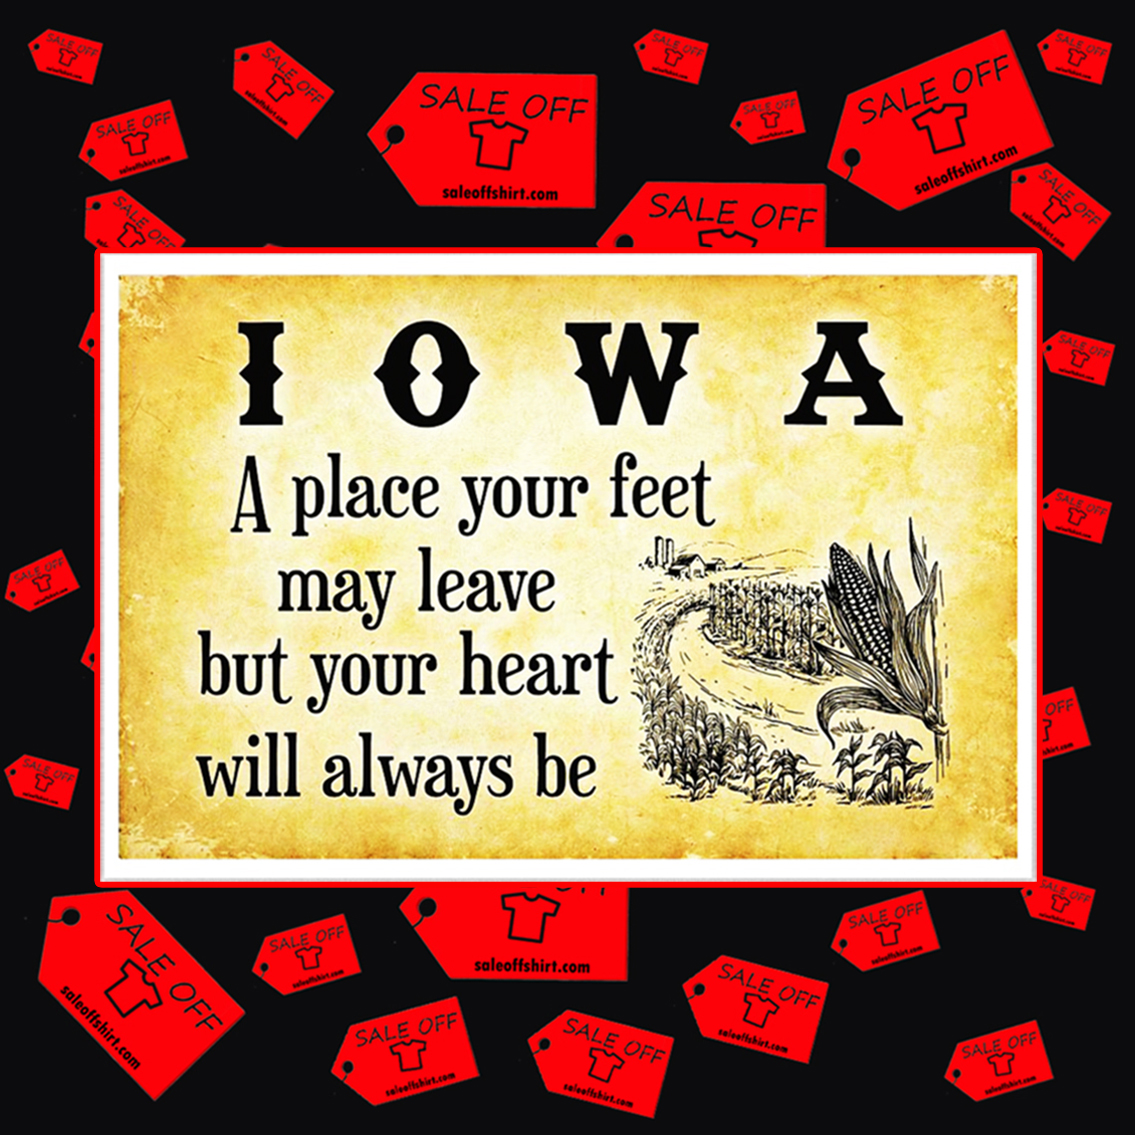 Iowa a place your feet may leave but your heart will always be poster 24x16